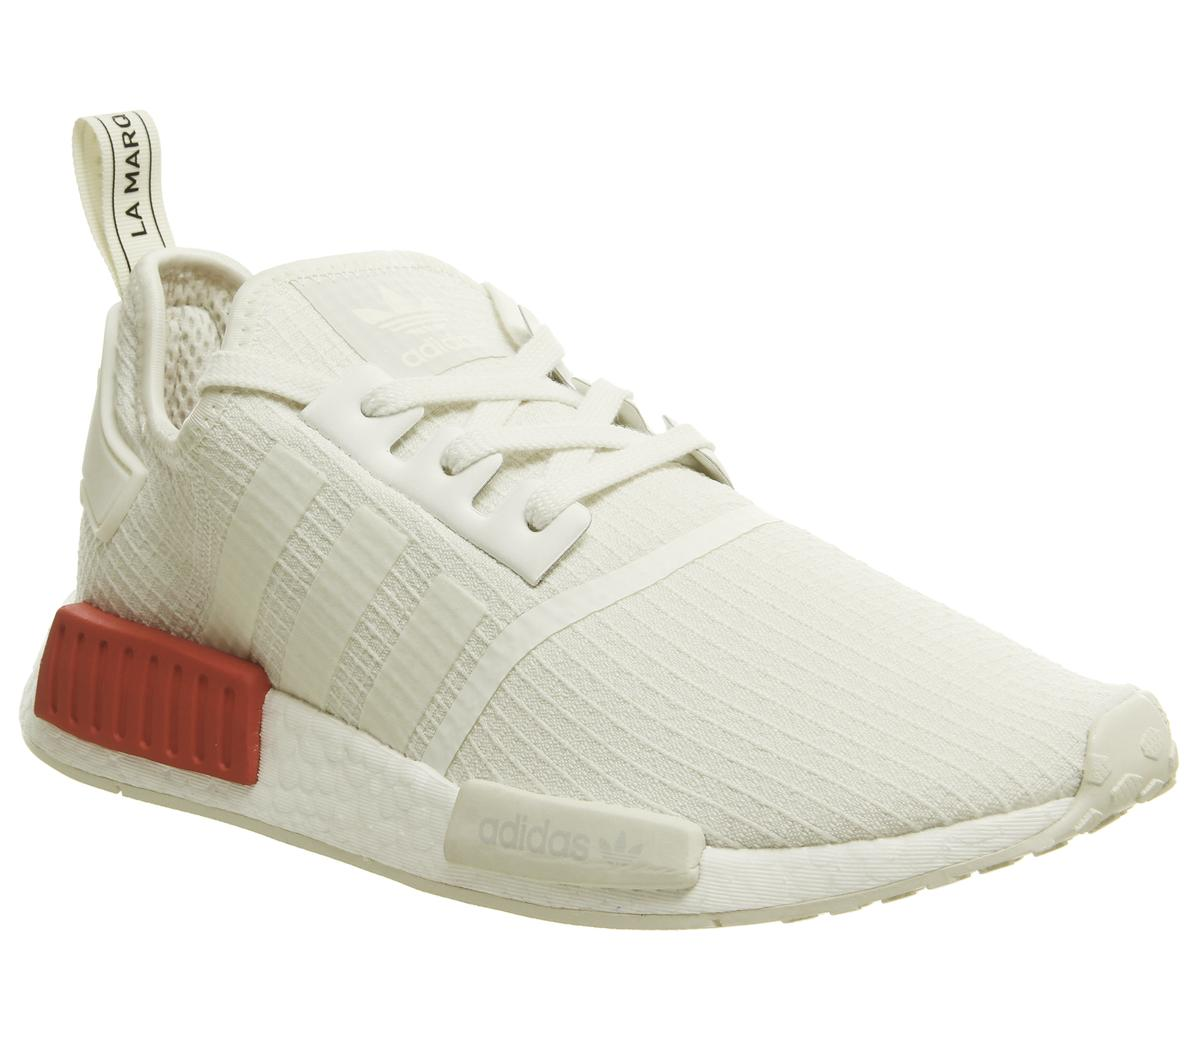 adidas Nmd R1 Trainers Off White Lush